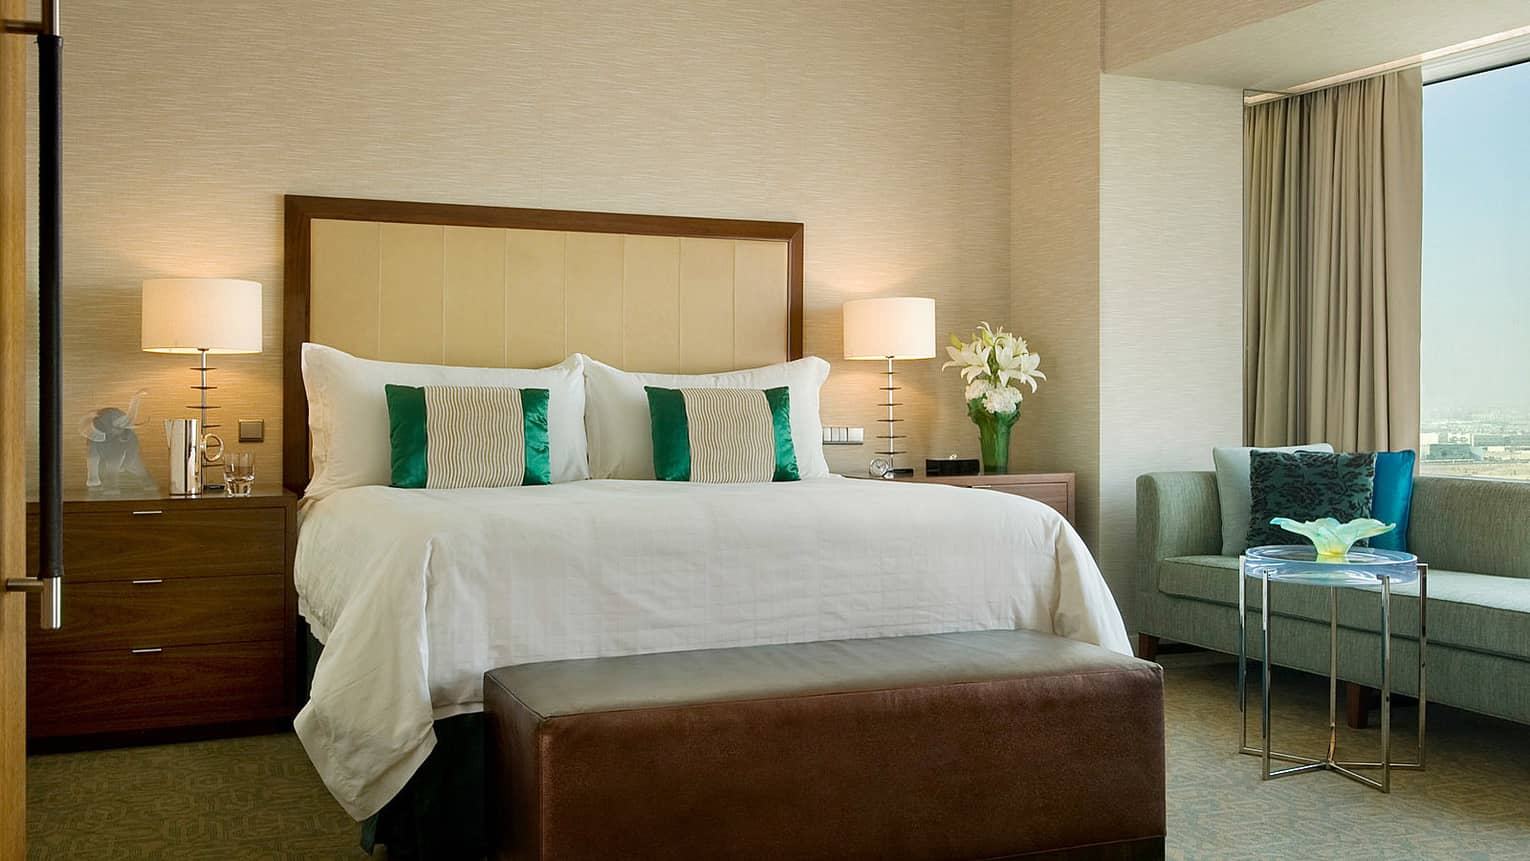 Hotel room bed with green-and-white silk accent pillows, brown leather bench at foot, green sofa at window